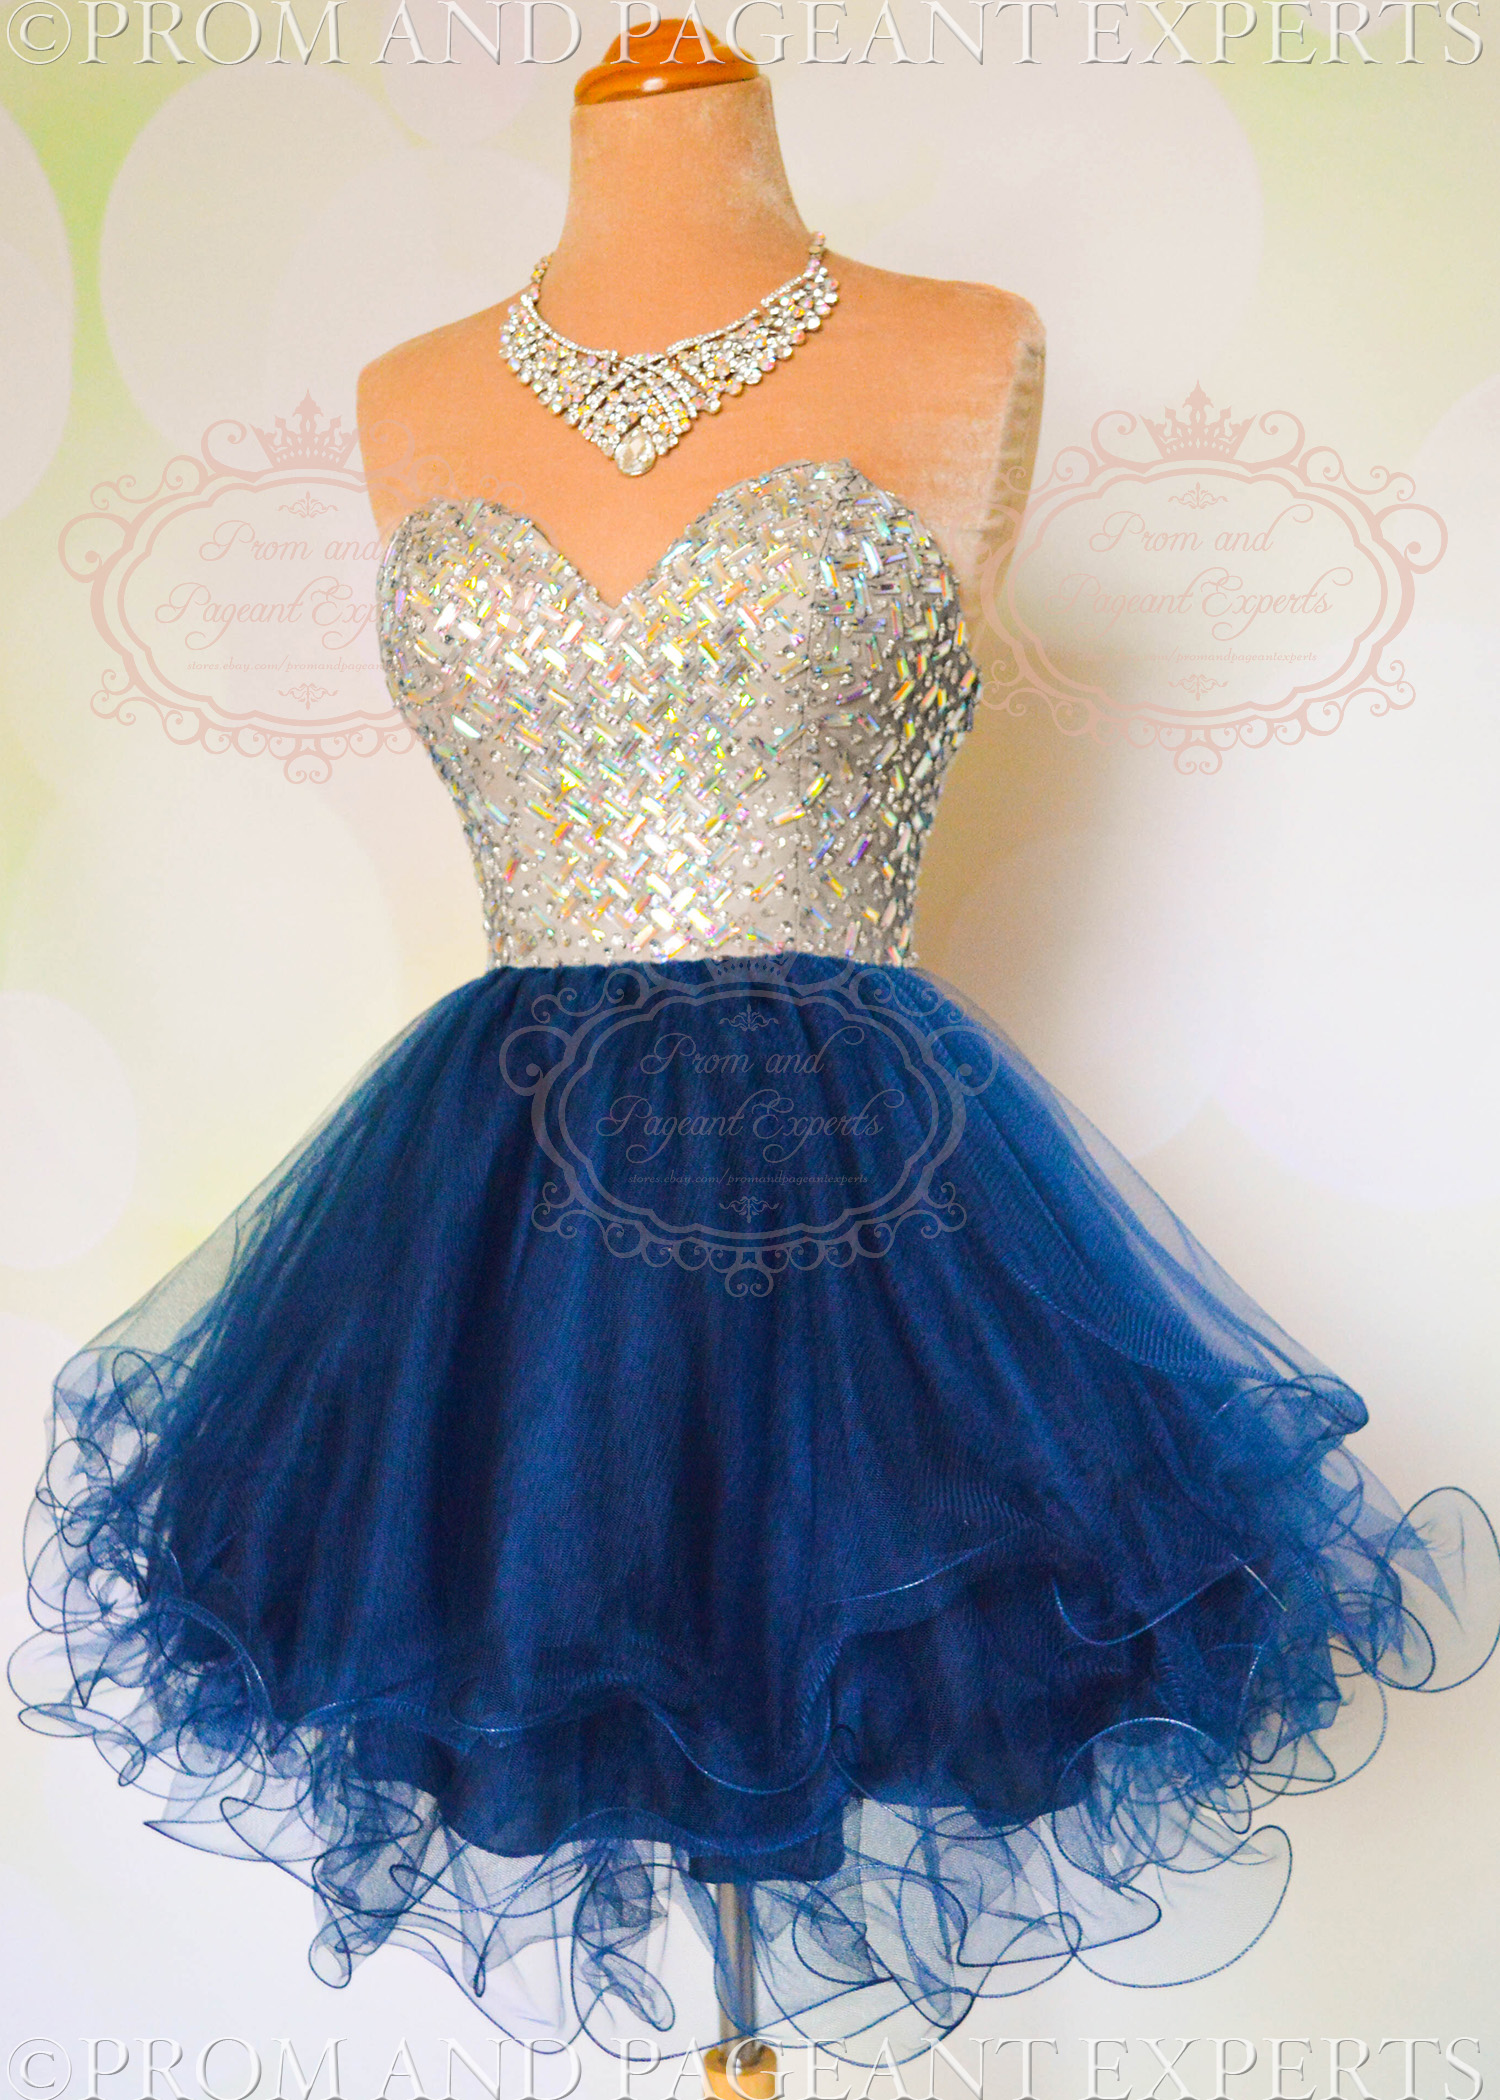 Starry Night Gown in Navy/Nude · Prom and Pageant Experts · Online ...